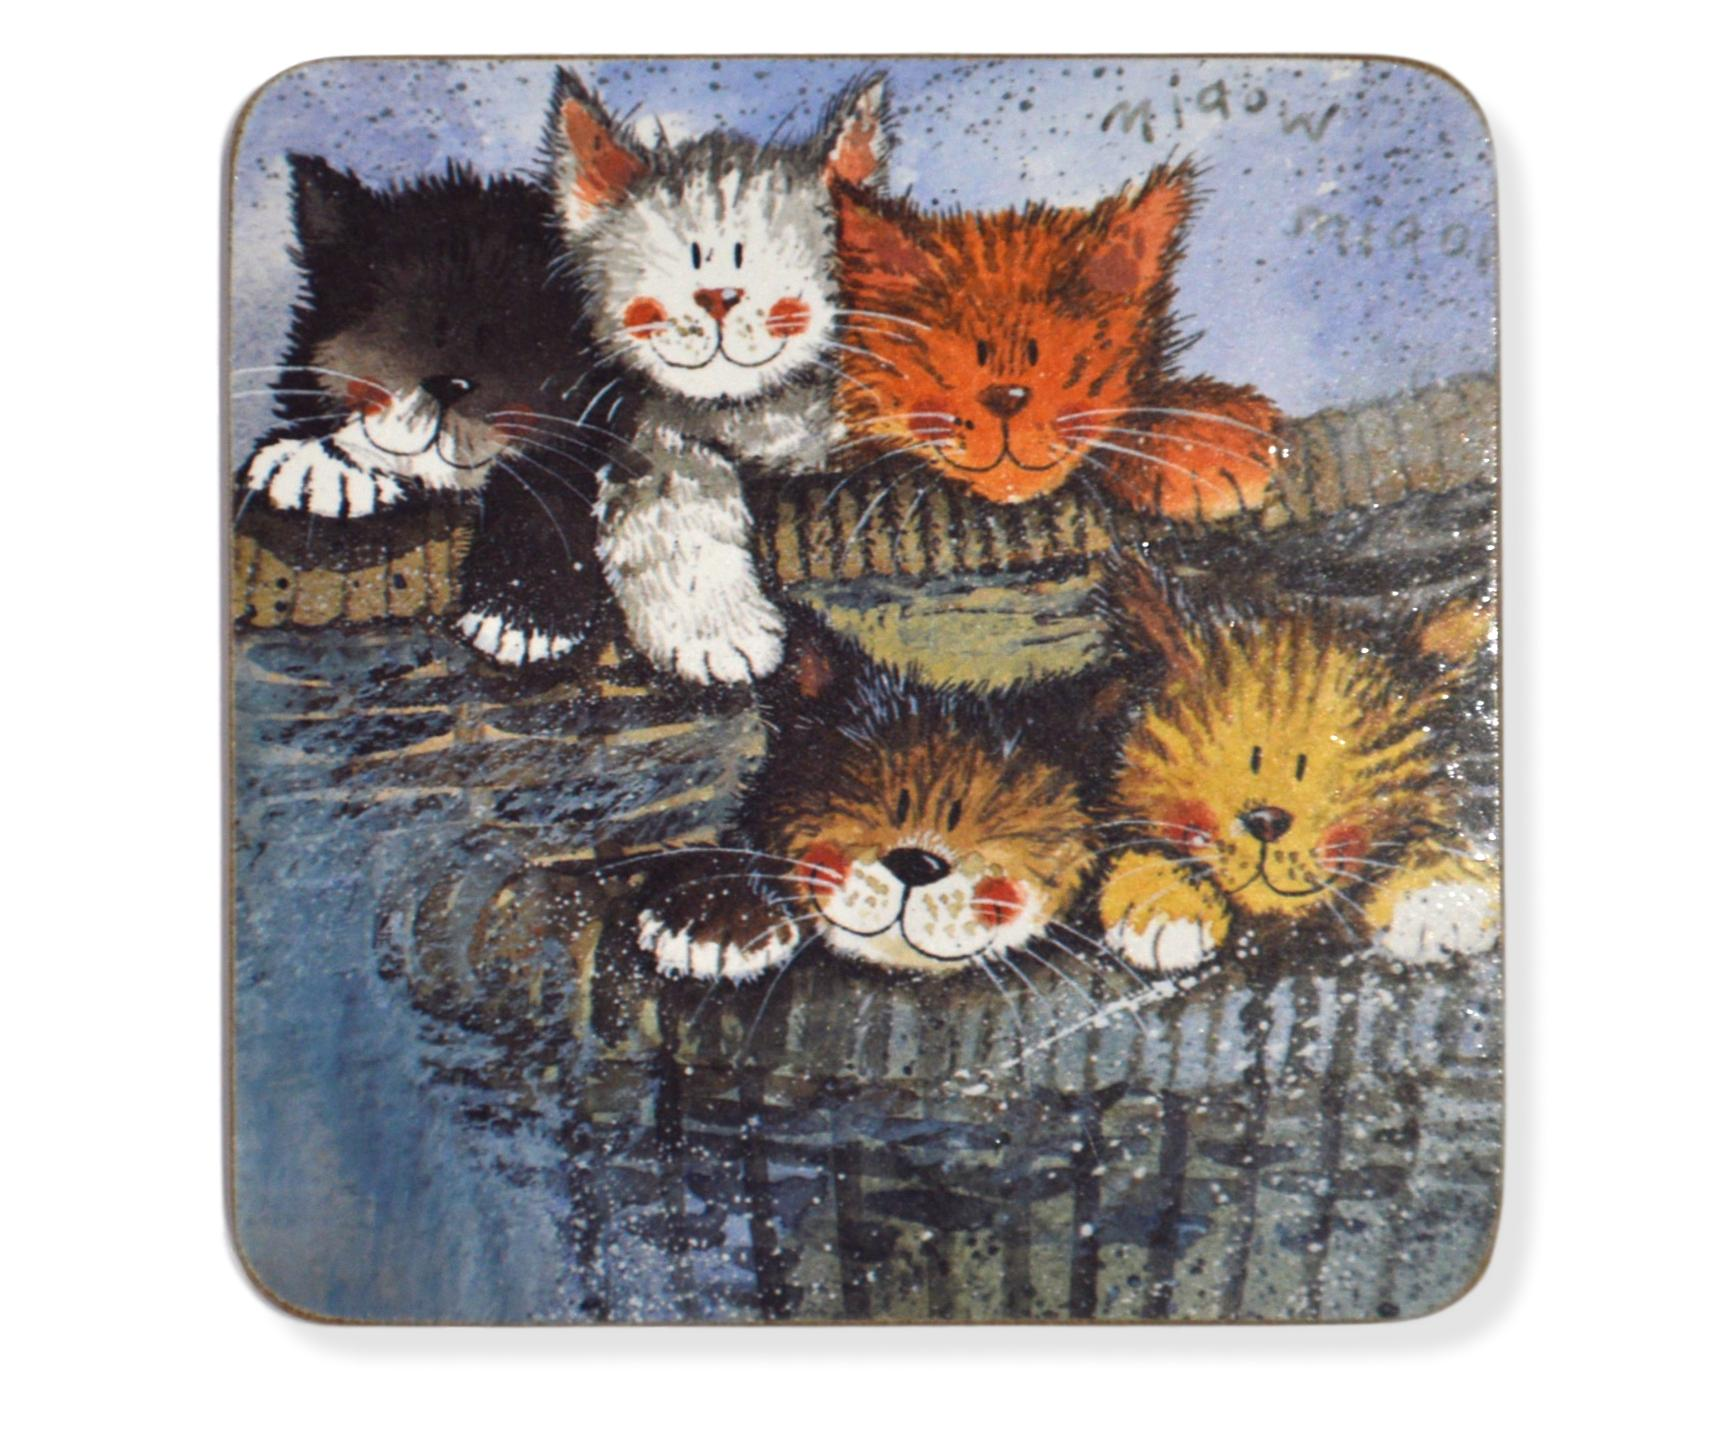 Set of 2 Kittens Cat Coasters